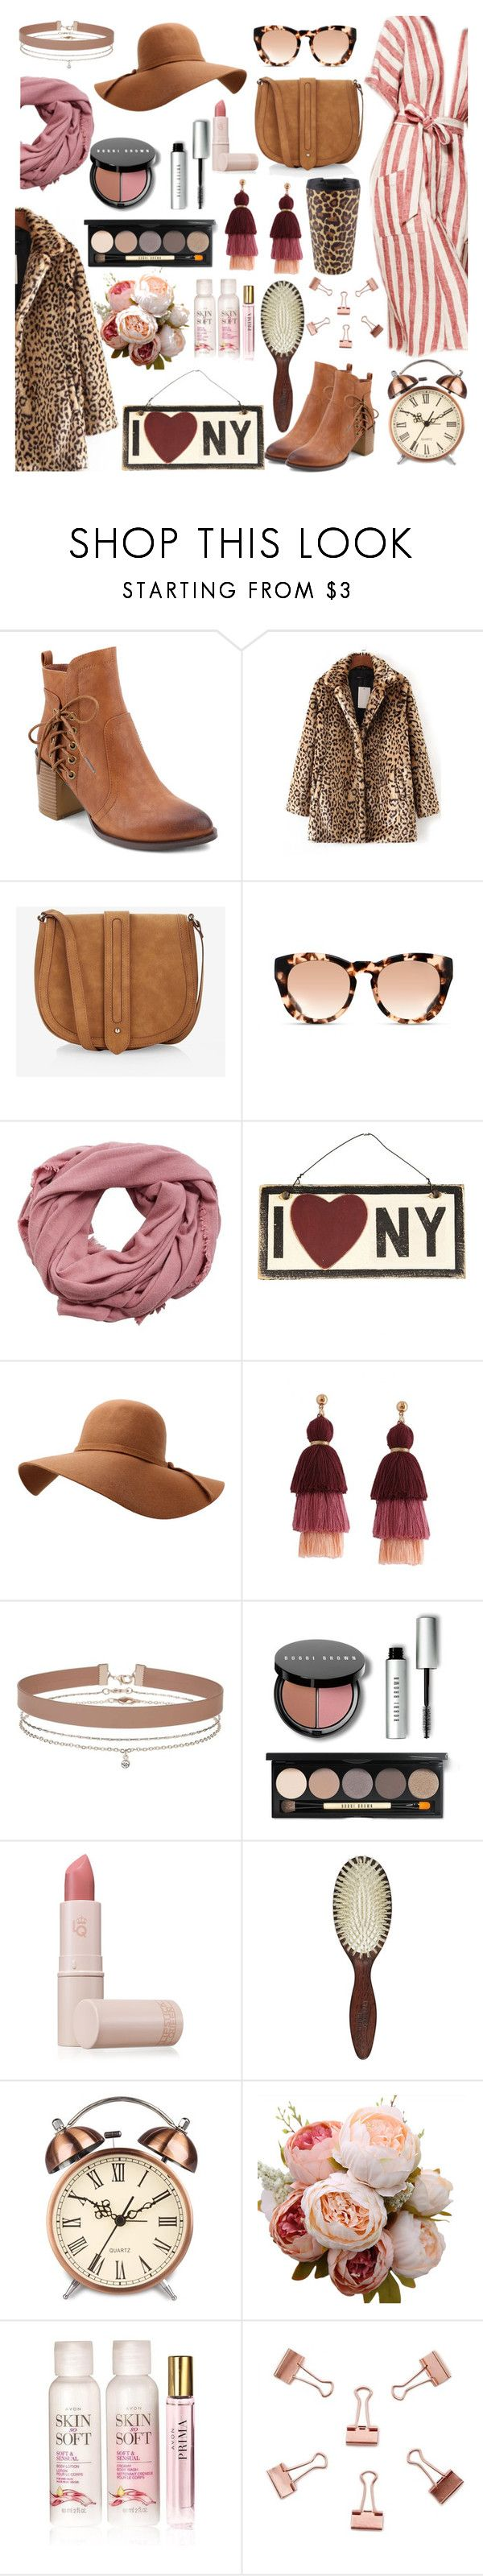 """""""Psalm 127:1"""" by mira-j ❤ liked on Polyvore featuring WithChic, Express, Michael Kors, MANGO, Miss Selfridge, Bobbi Brown Cosmetics, Lipstick Queen, Christophe Robin, Avon and Forever 21"""